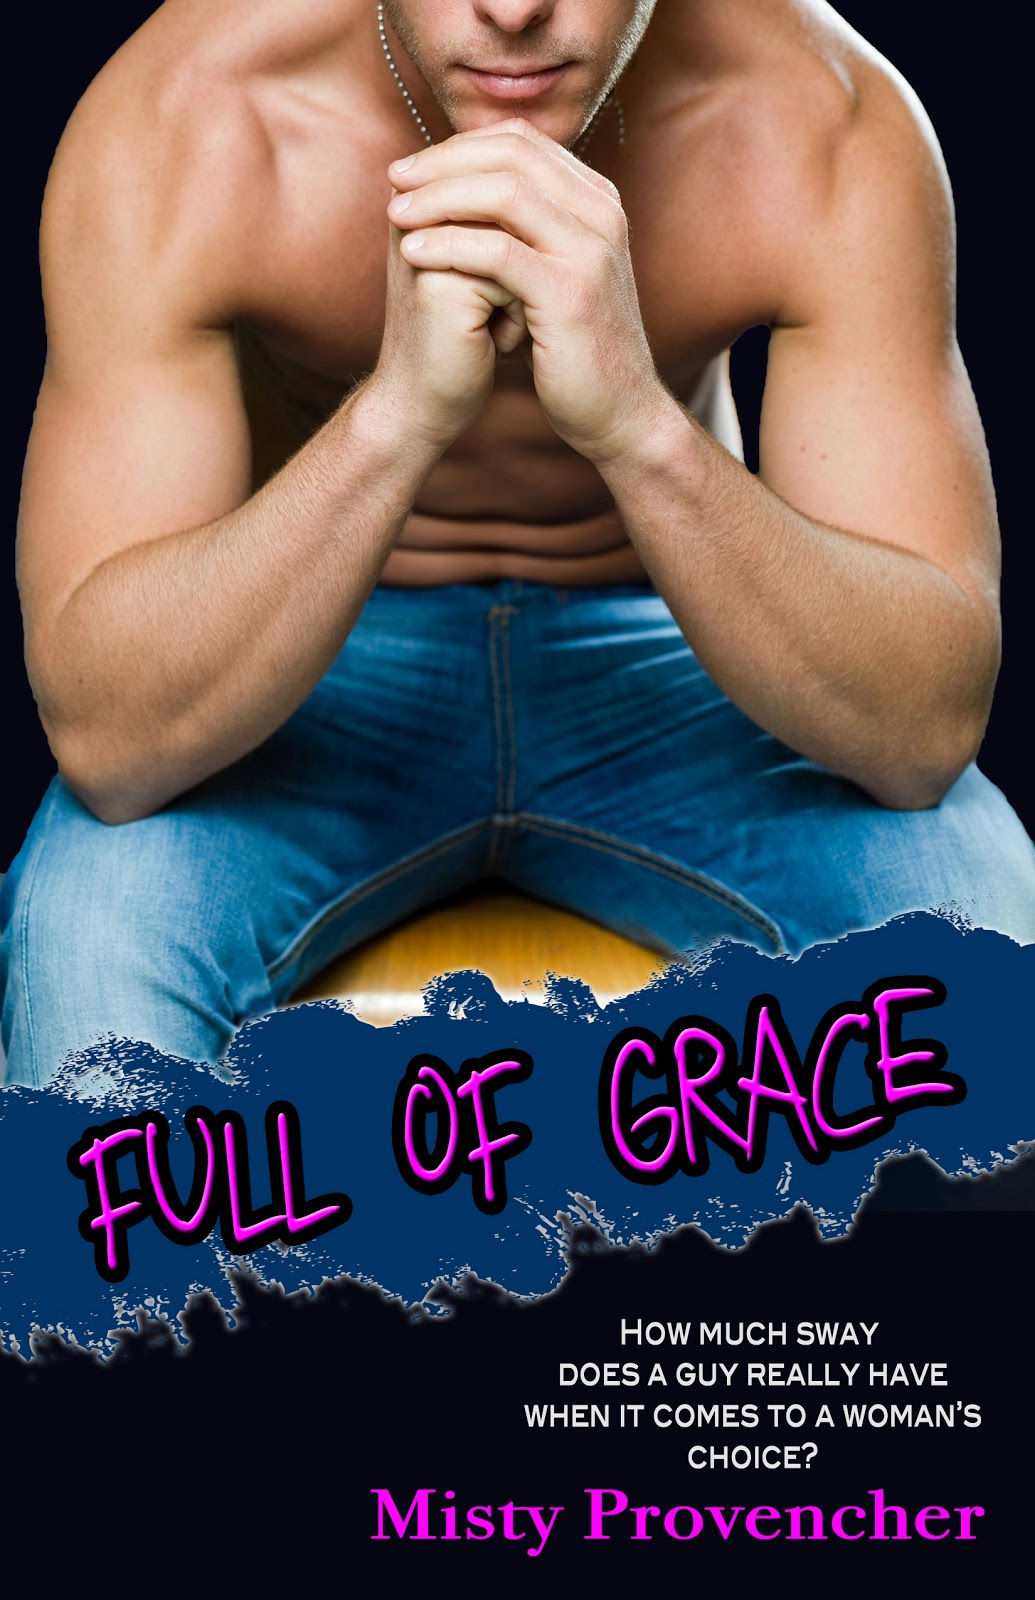 Blog Tour: Review – Full of Grace by Misty Provencher